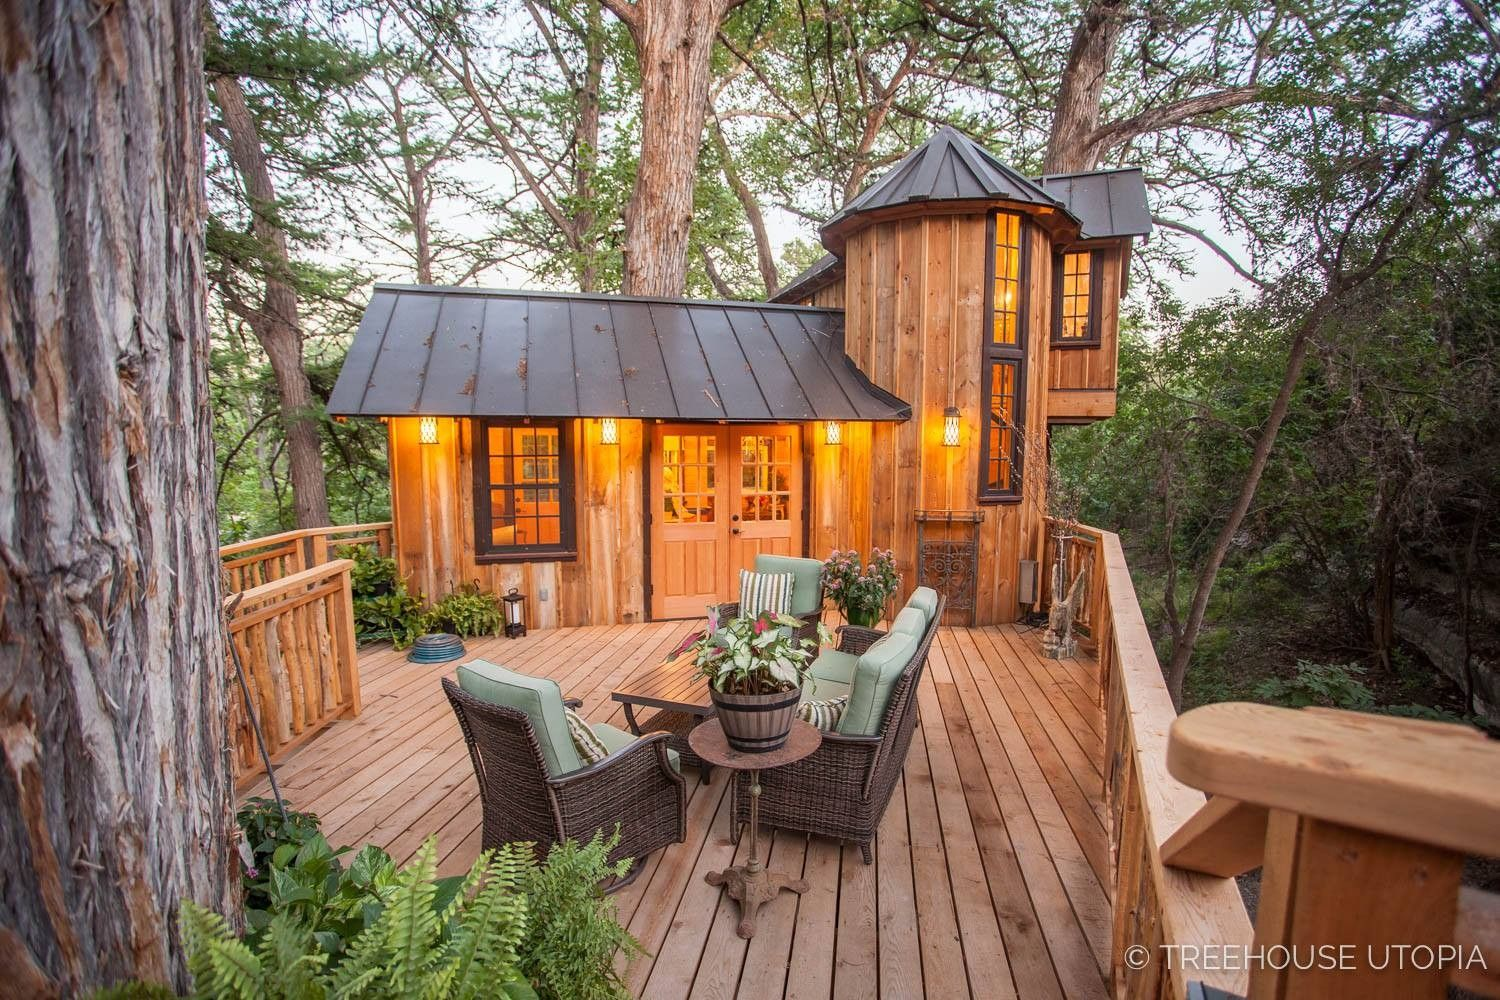 Pin by Brendan Maestas on Architecture Tree house plans